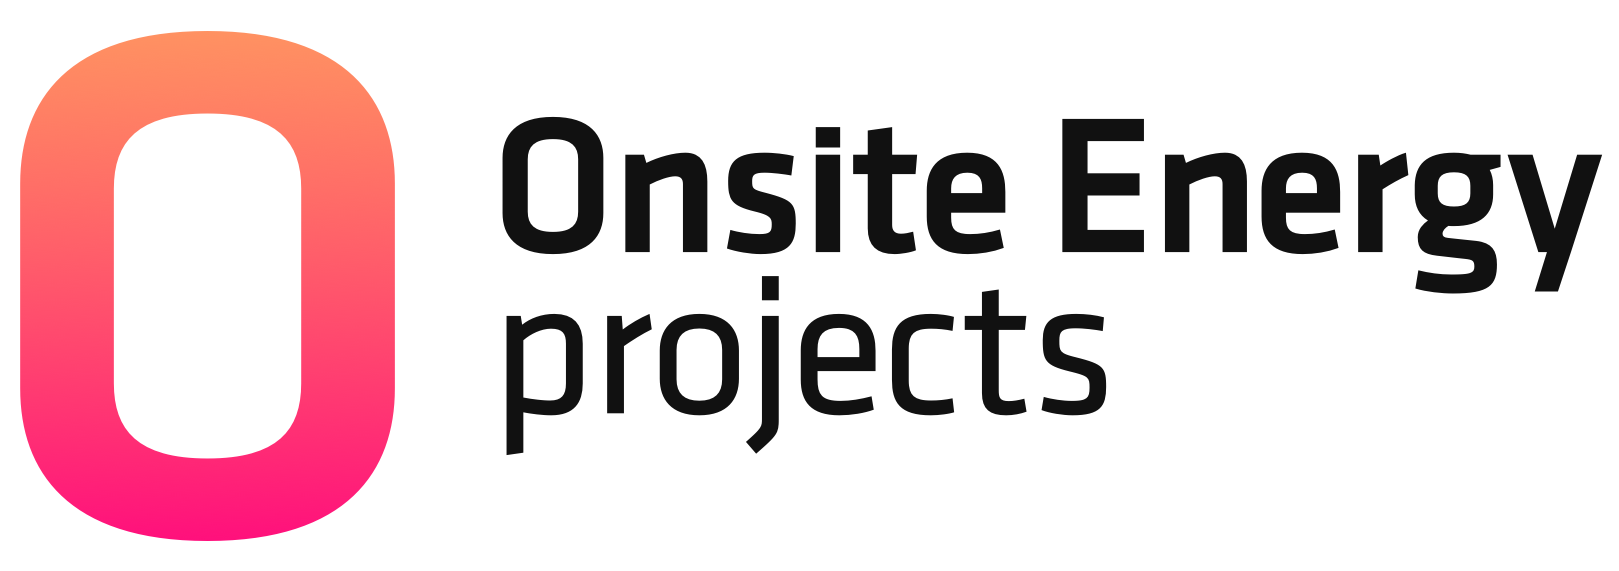 Onsite Energy Projects Ltd